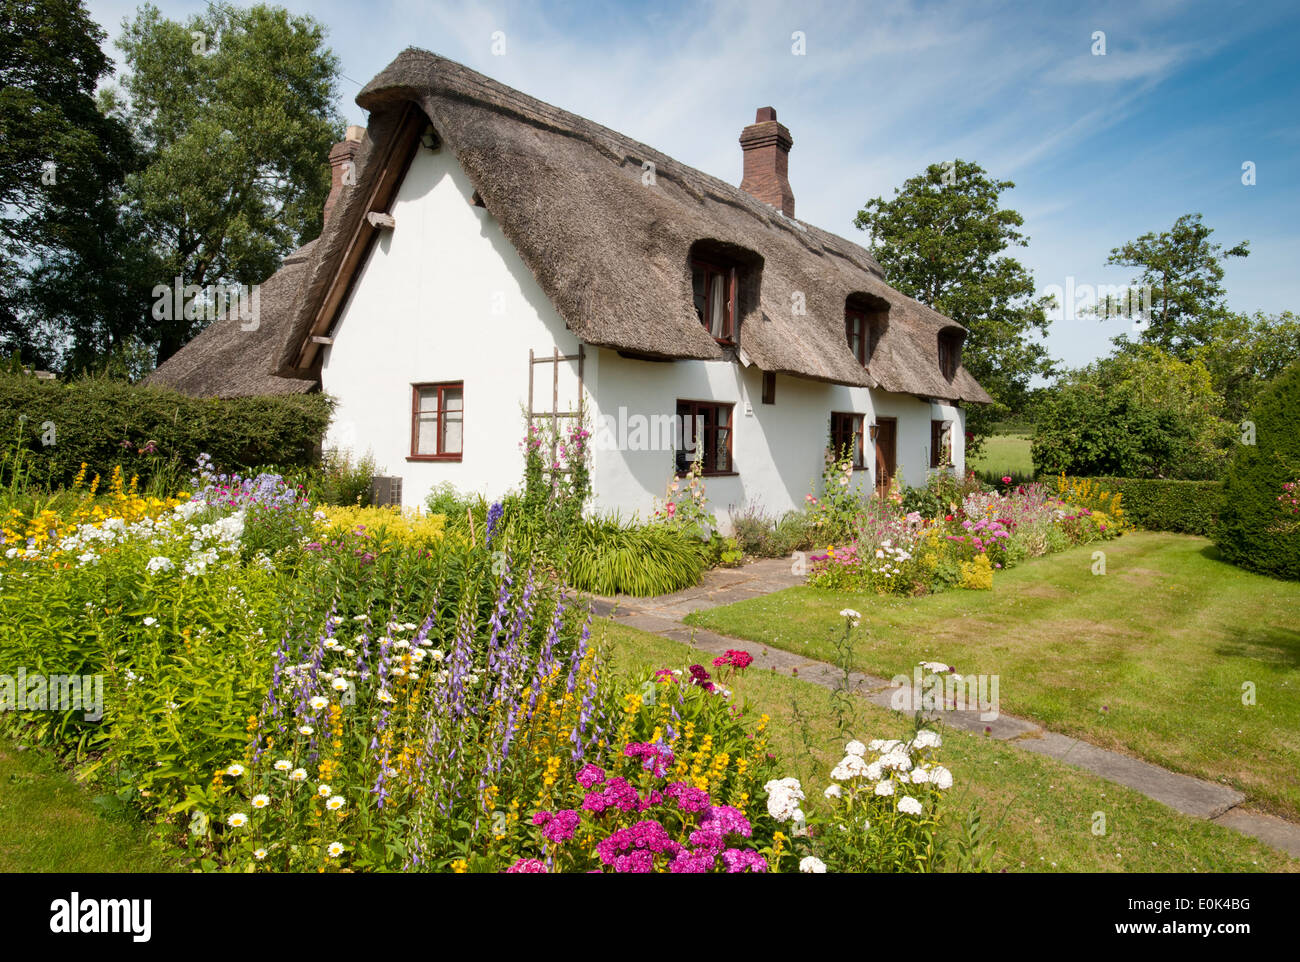 kidbrook cottage in summer comerbach cheshire england uk stock photo royalty free image. Black Bedroom Furniture Sets. Home Design Ideas